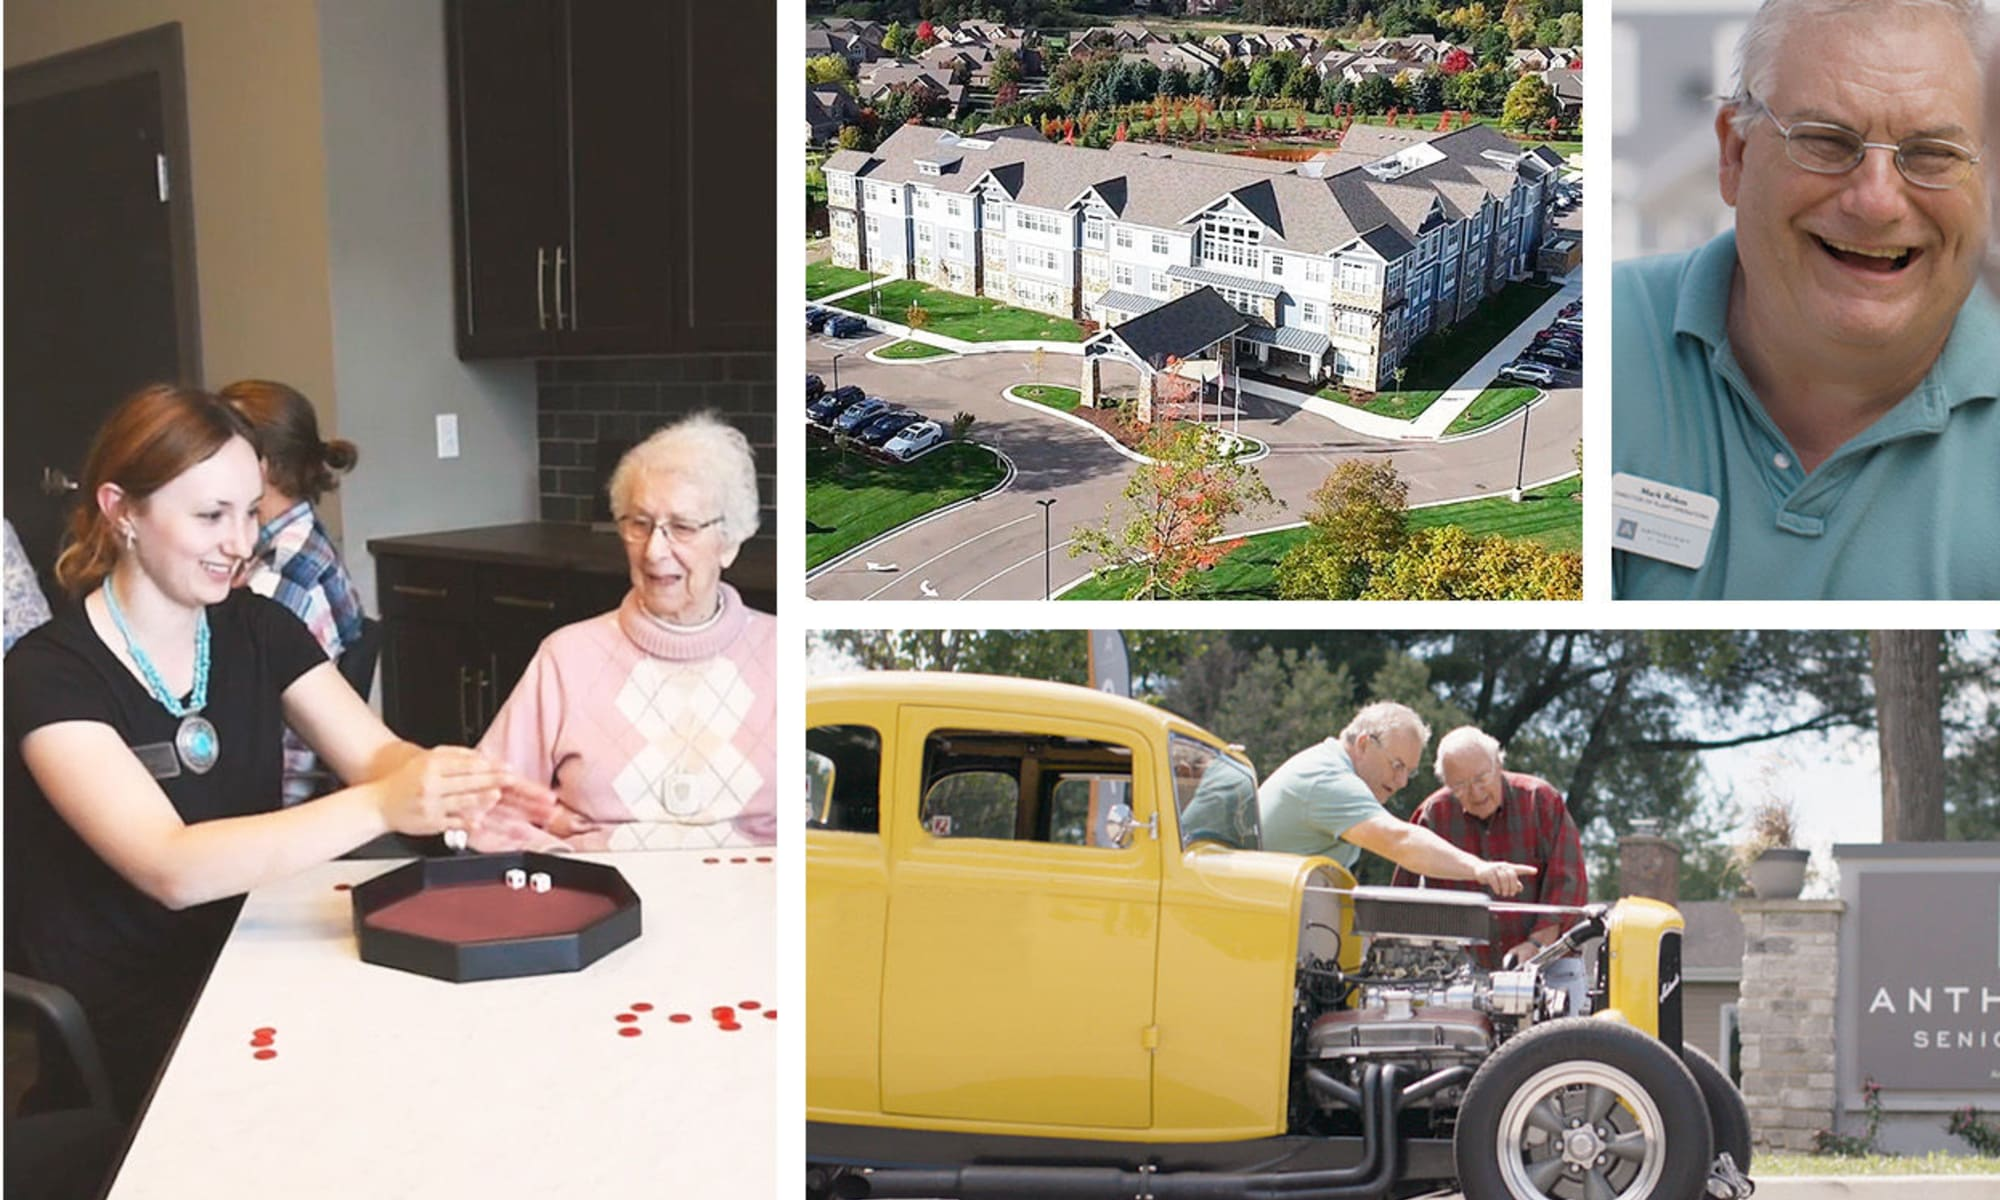 Anthology Senior Living in Denver, Colorado